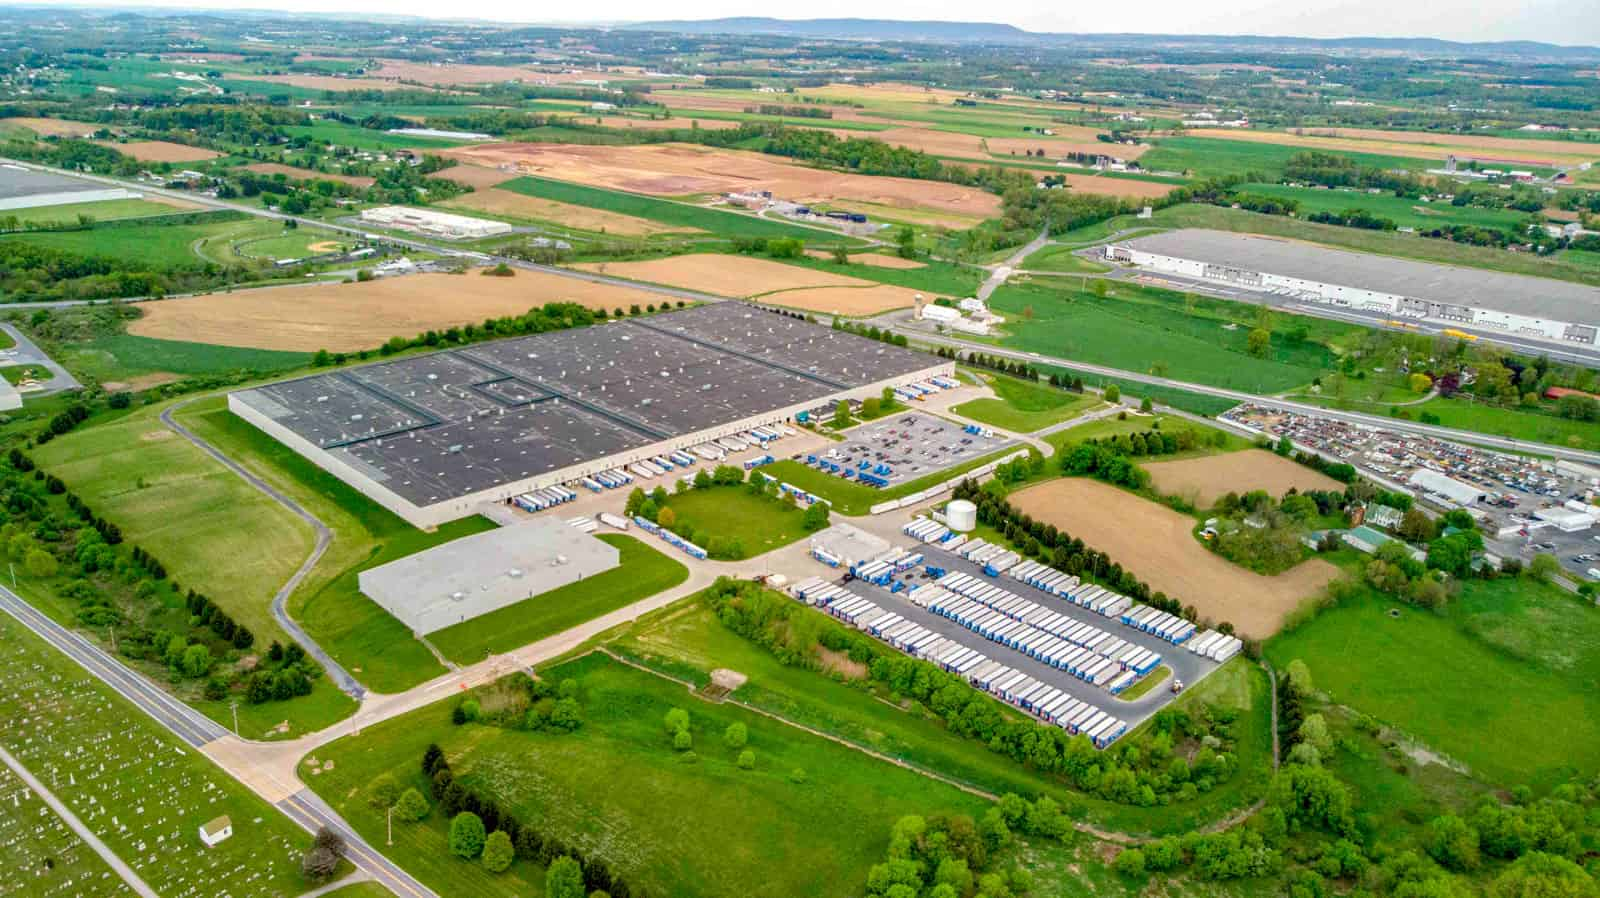 drone photo of shipping warehouse in Pennsylvania with lots of trucks and truck beds